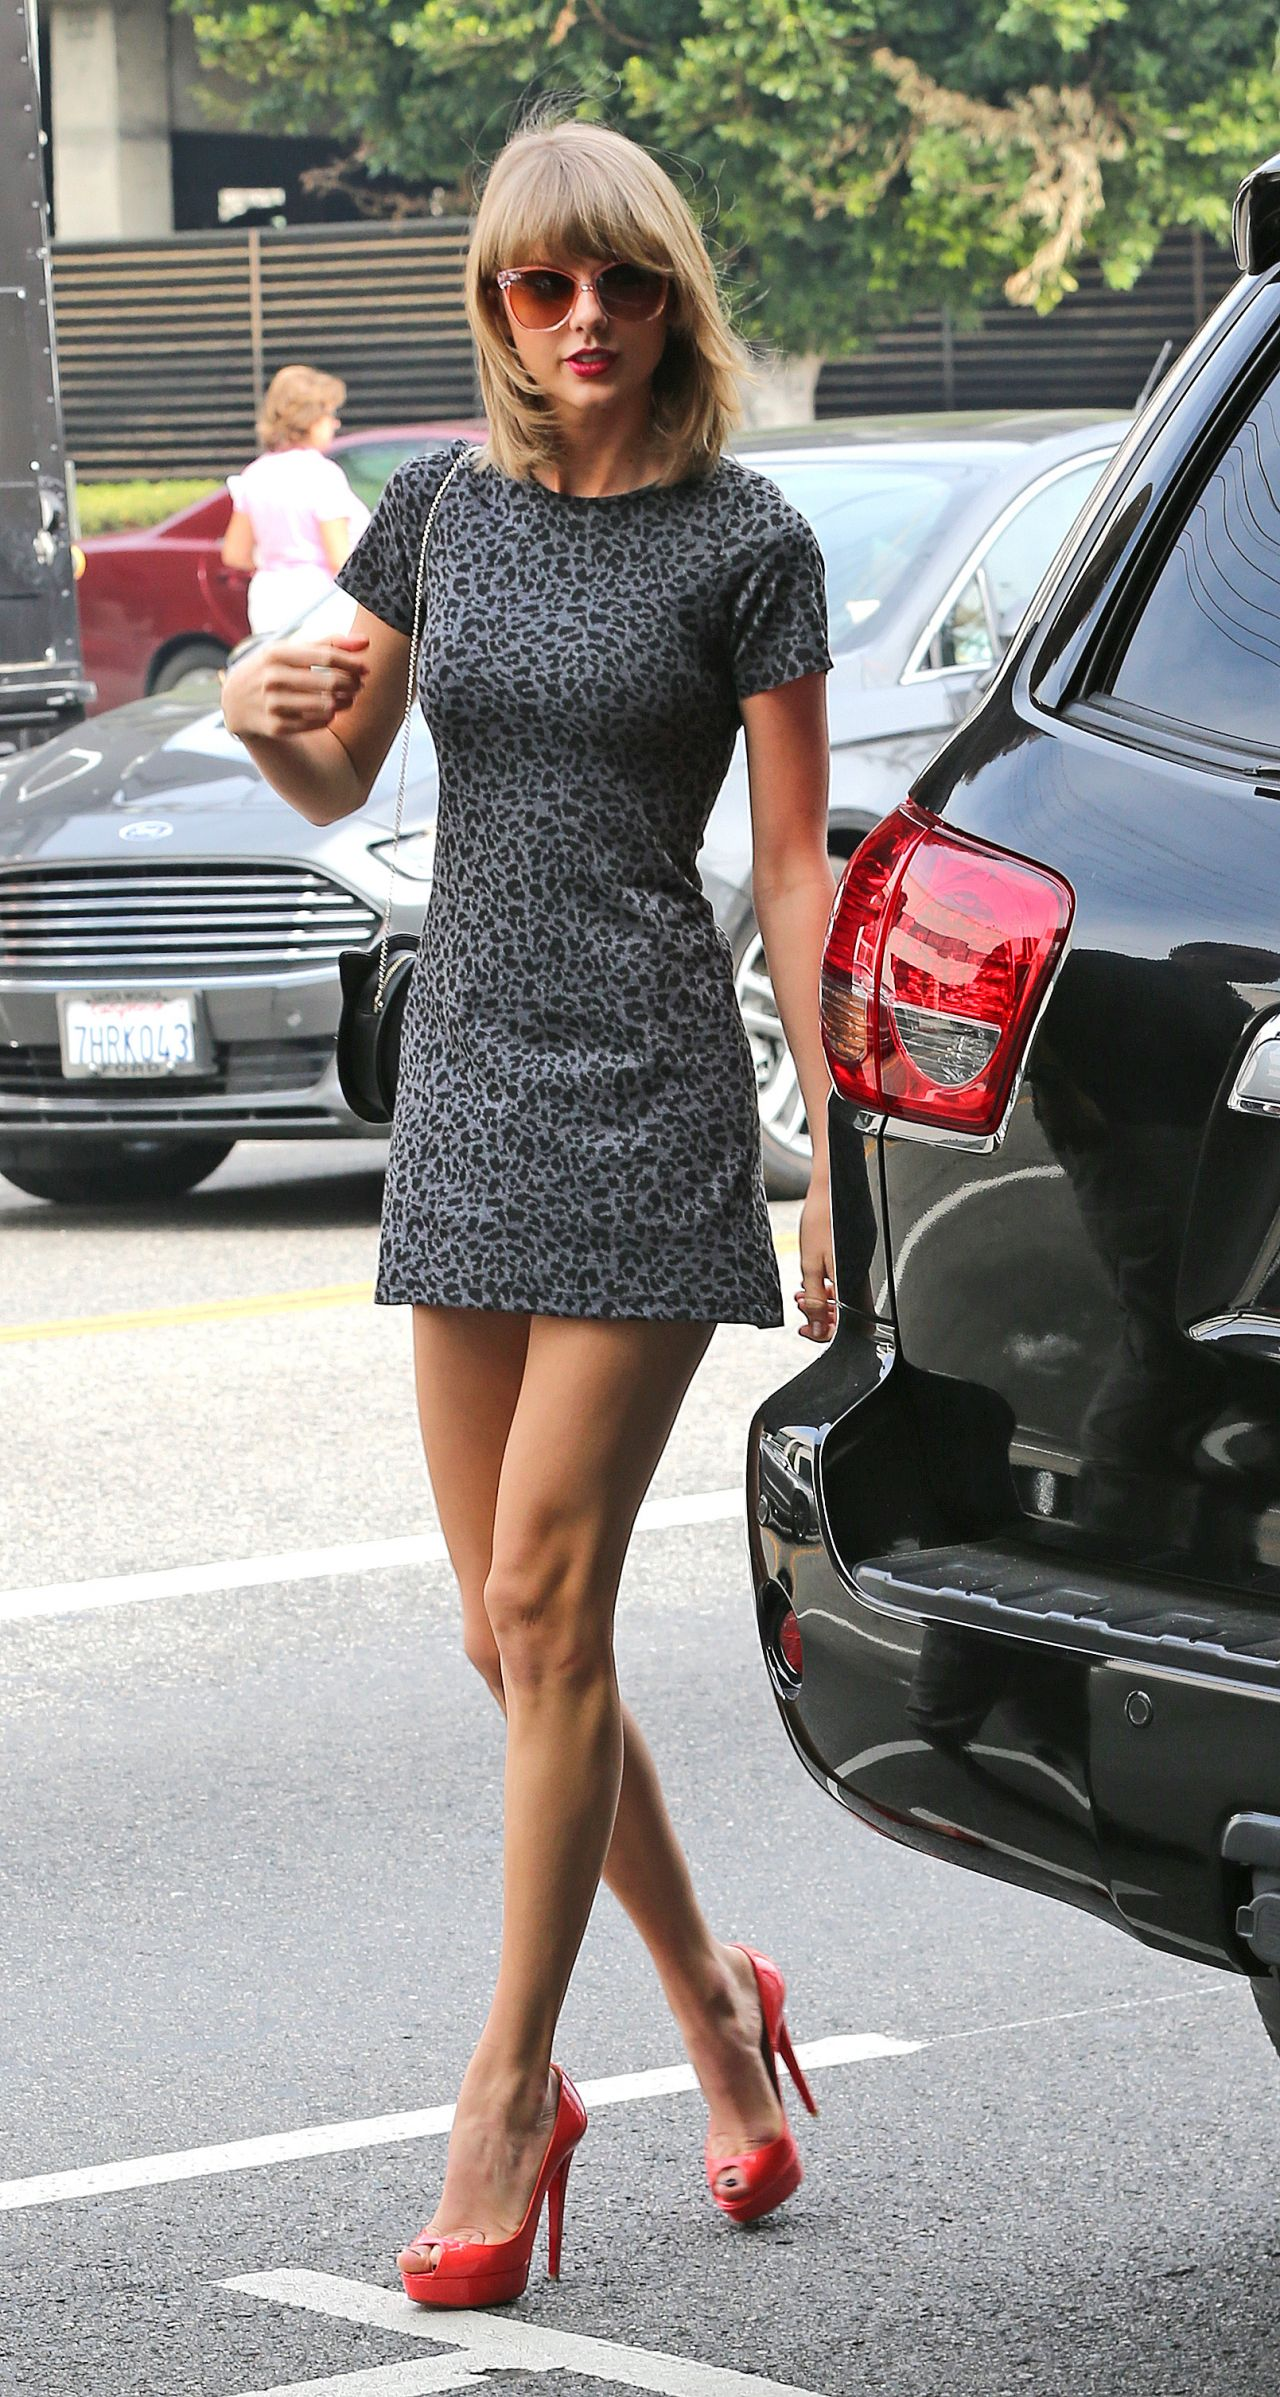 taylor-swift-in-mini-dress-out-for-lunch-in-los-angeles-march-2015_1